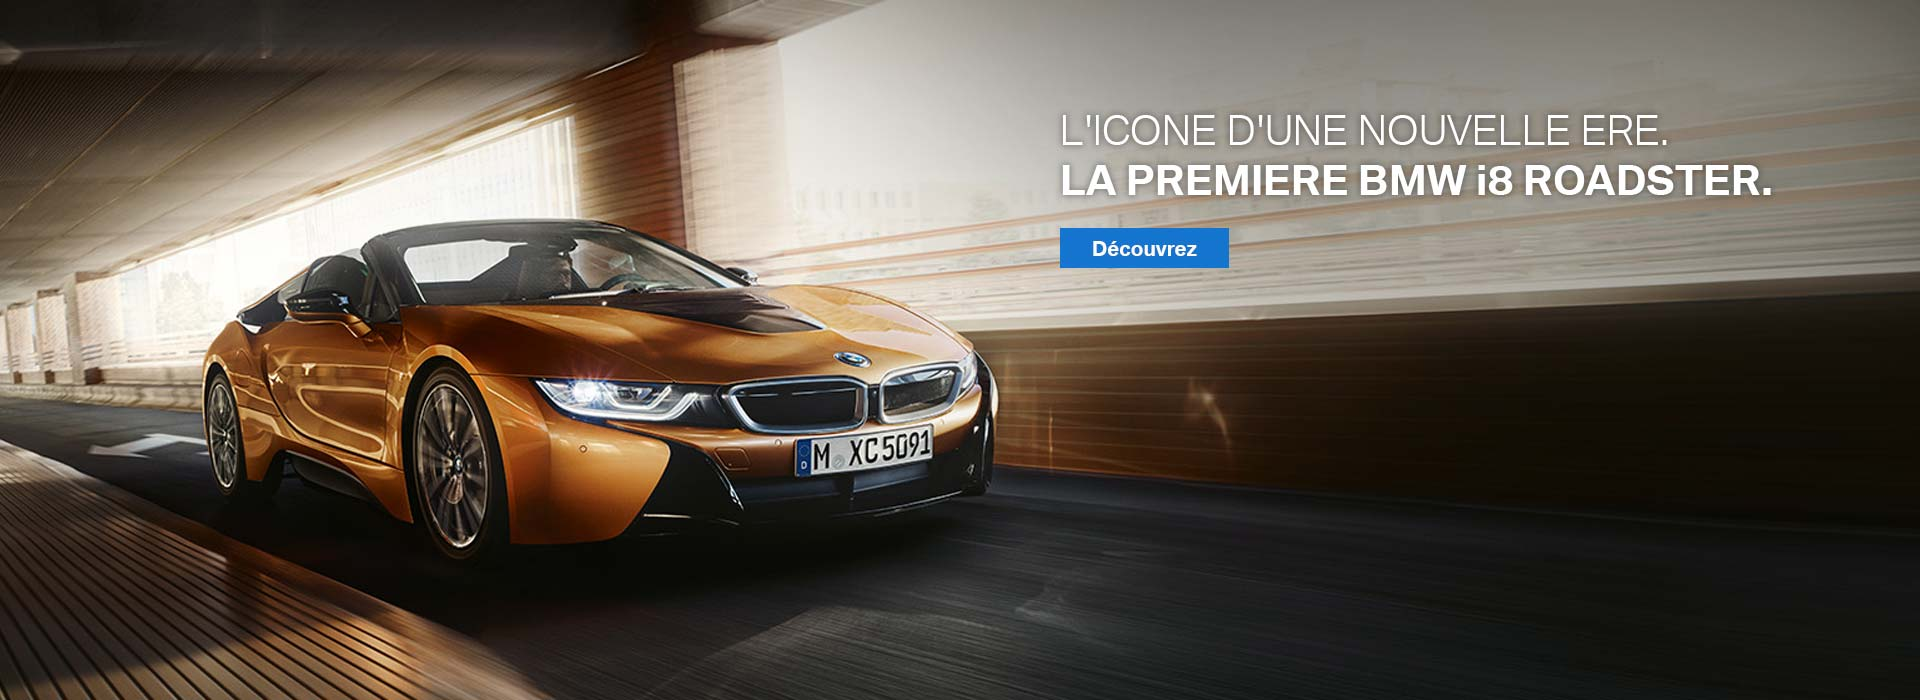 Bmw bayonne concessionnaire garage pyr n es for Garage concessionnaire bmw